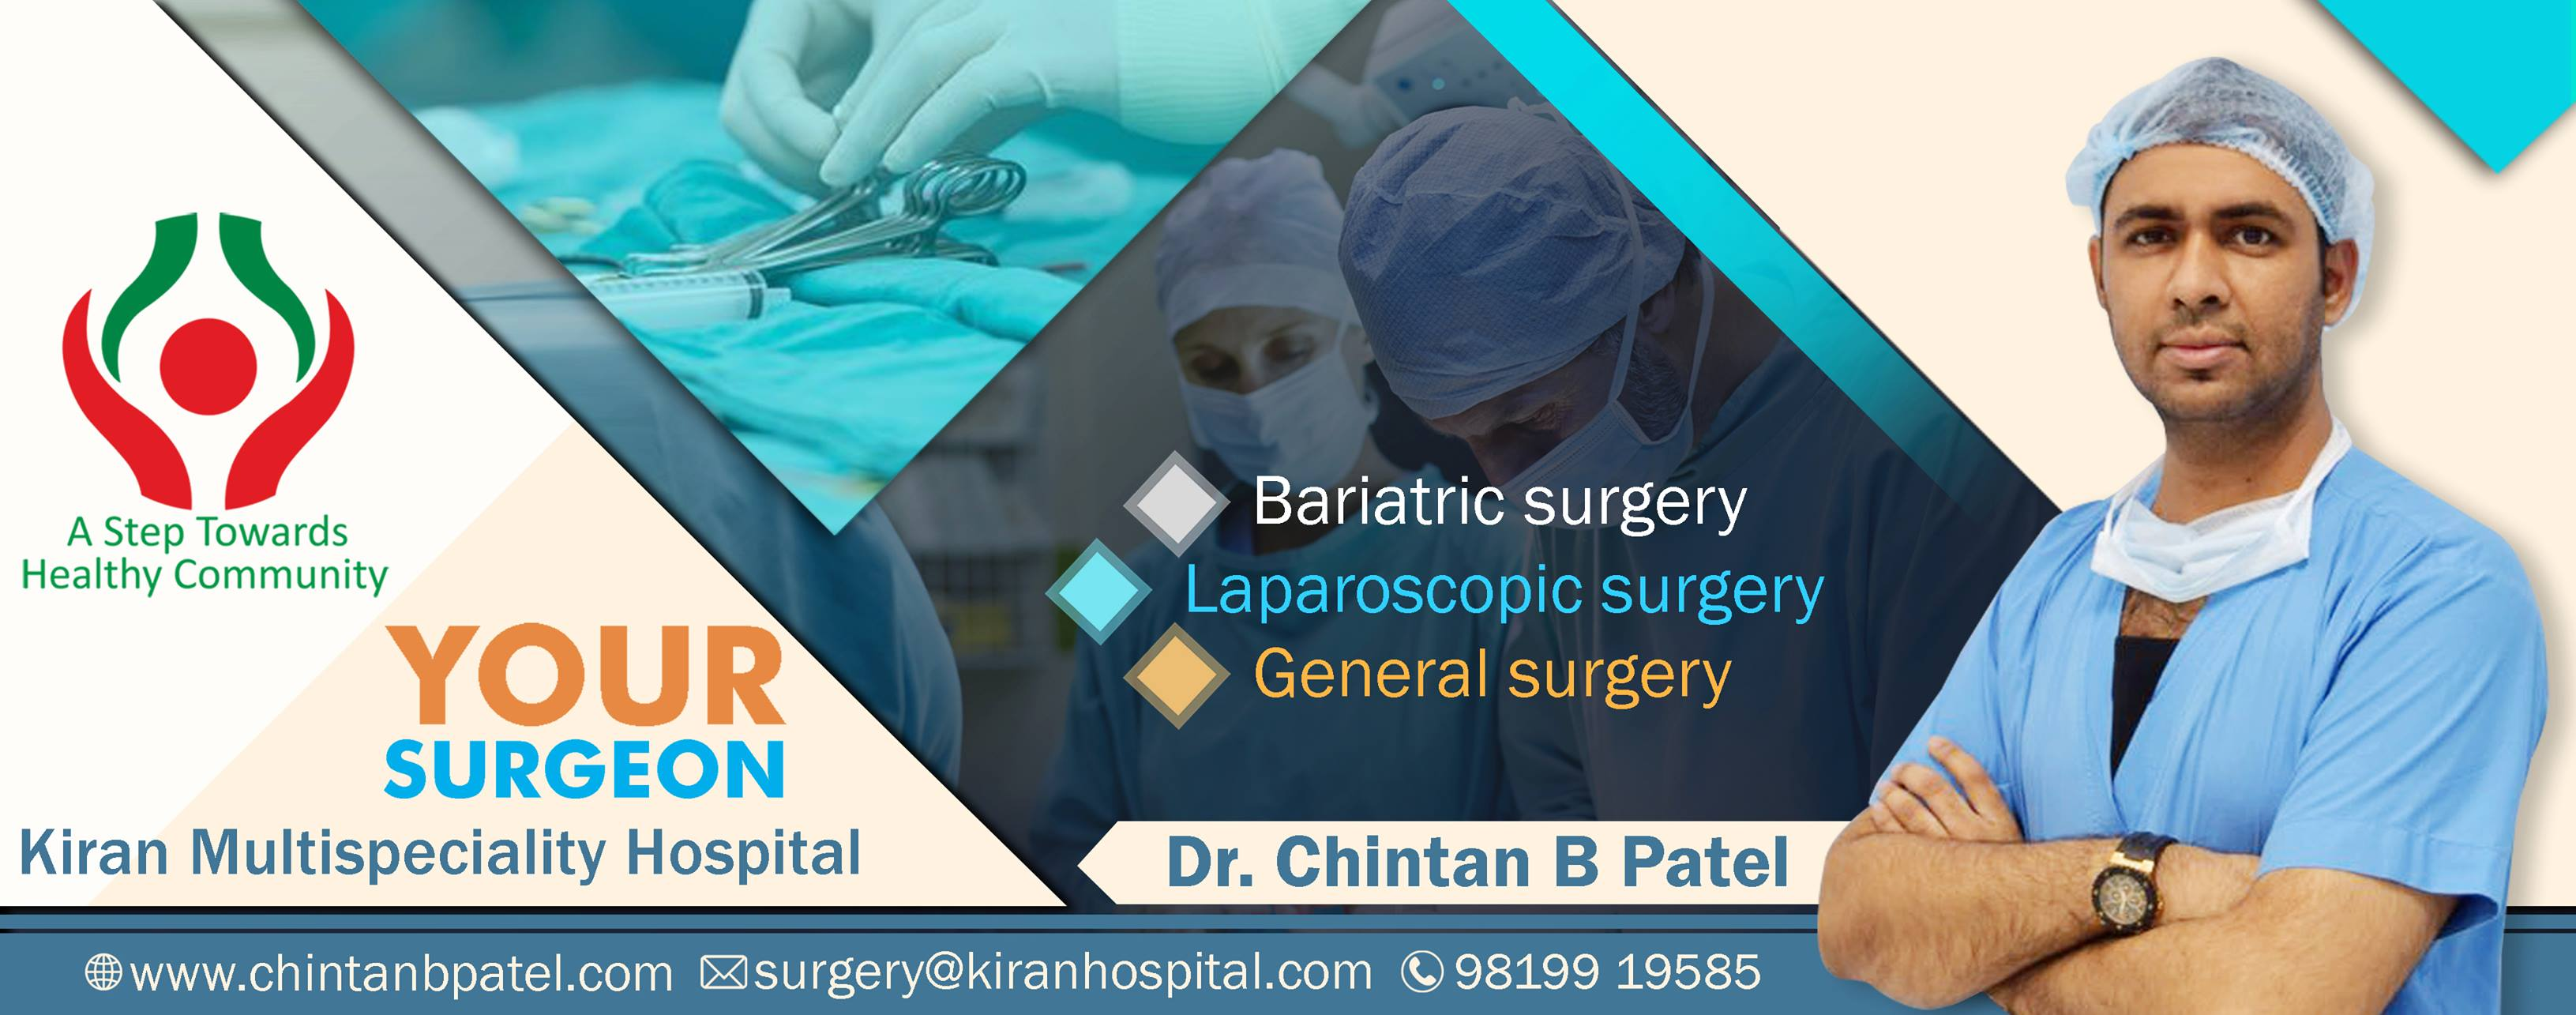 Bariatric Surgery Not The Easy Way Out The Healthy Way Out By Dr